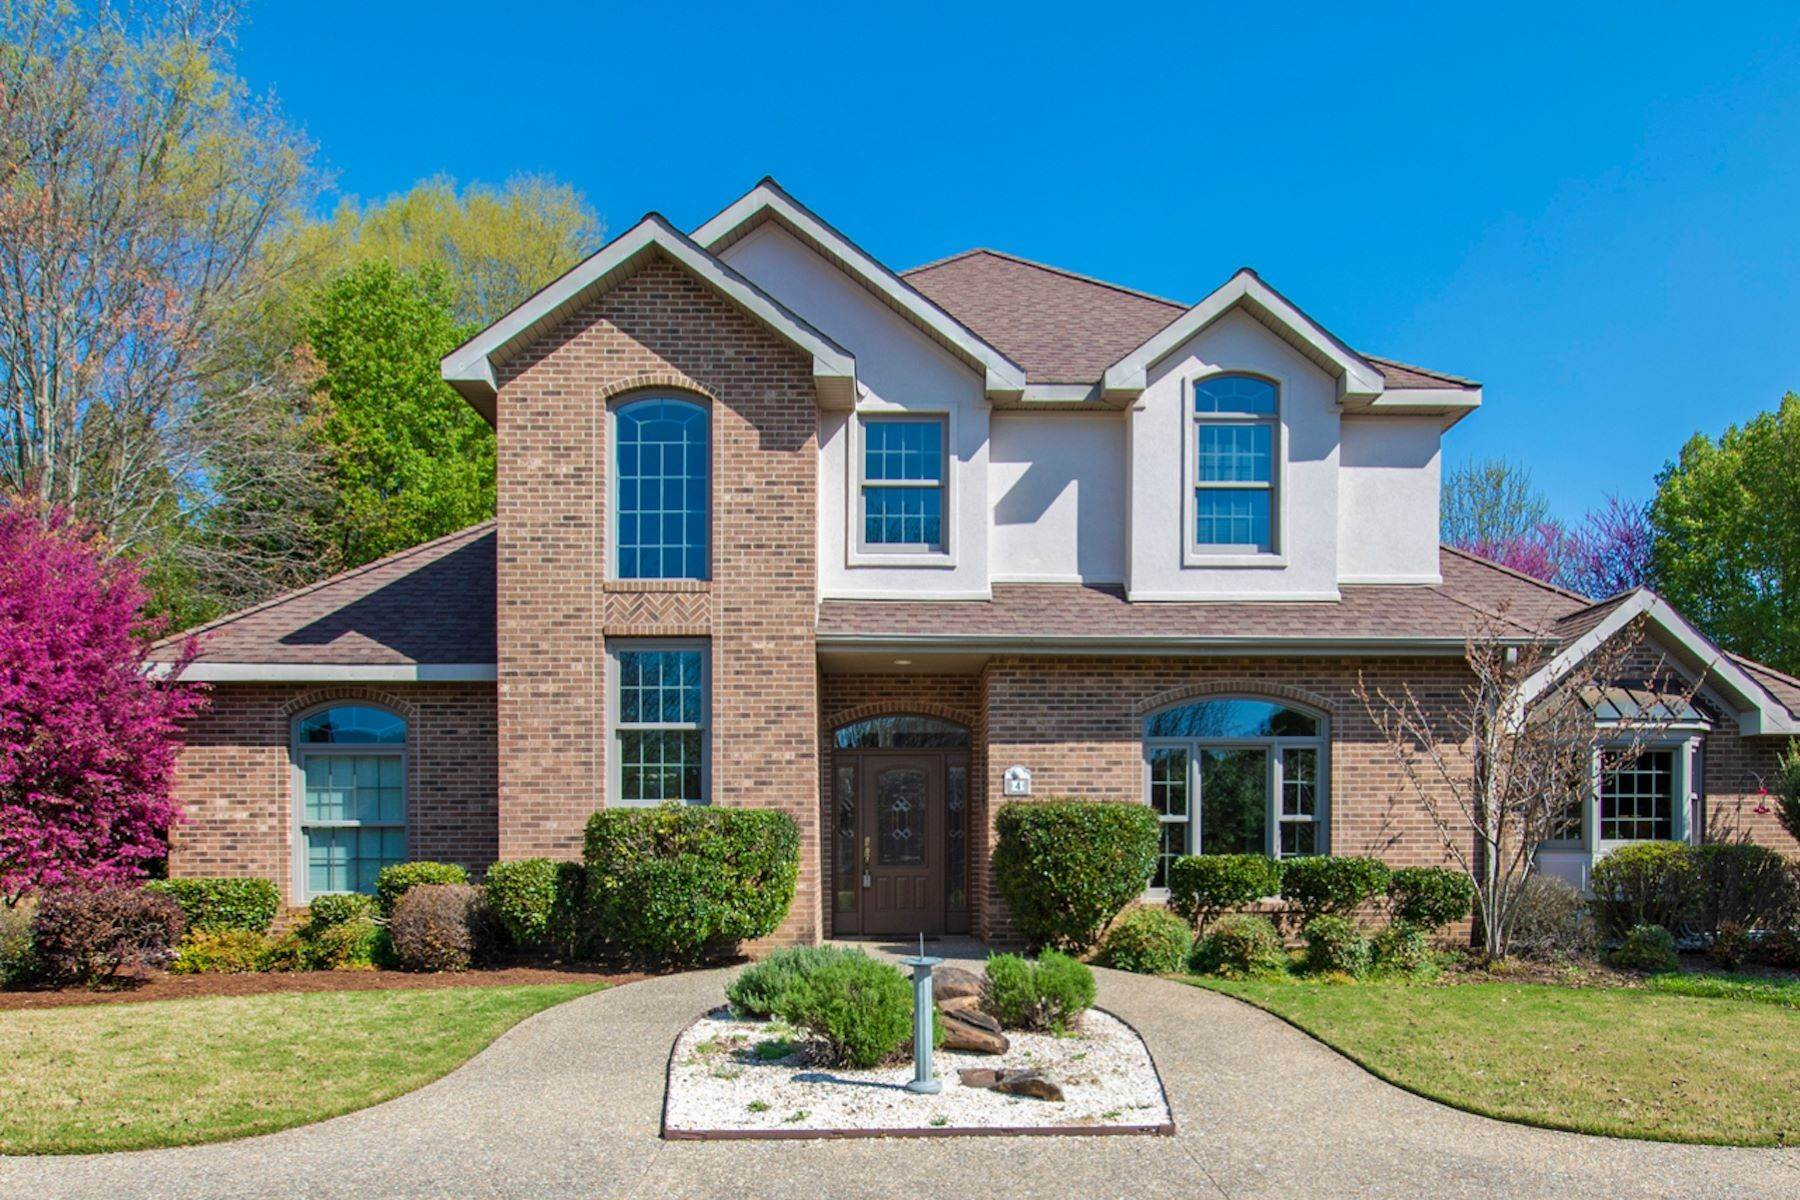 Single Family Homes for Sale at Stunning Executive Home in Croasdaile Farm, Durham, North Carolina, USA 4 Crepe Myrtle Place Durham, North Carolina 27705 United States